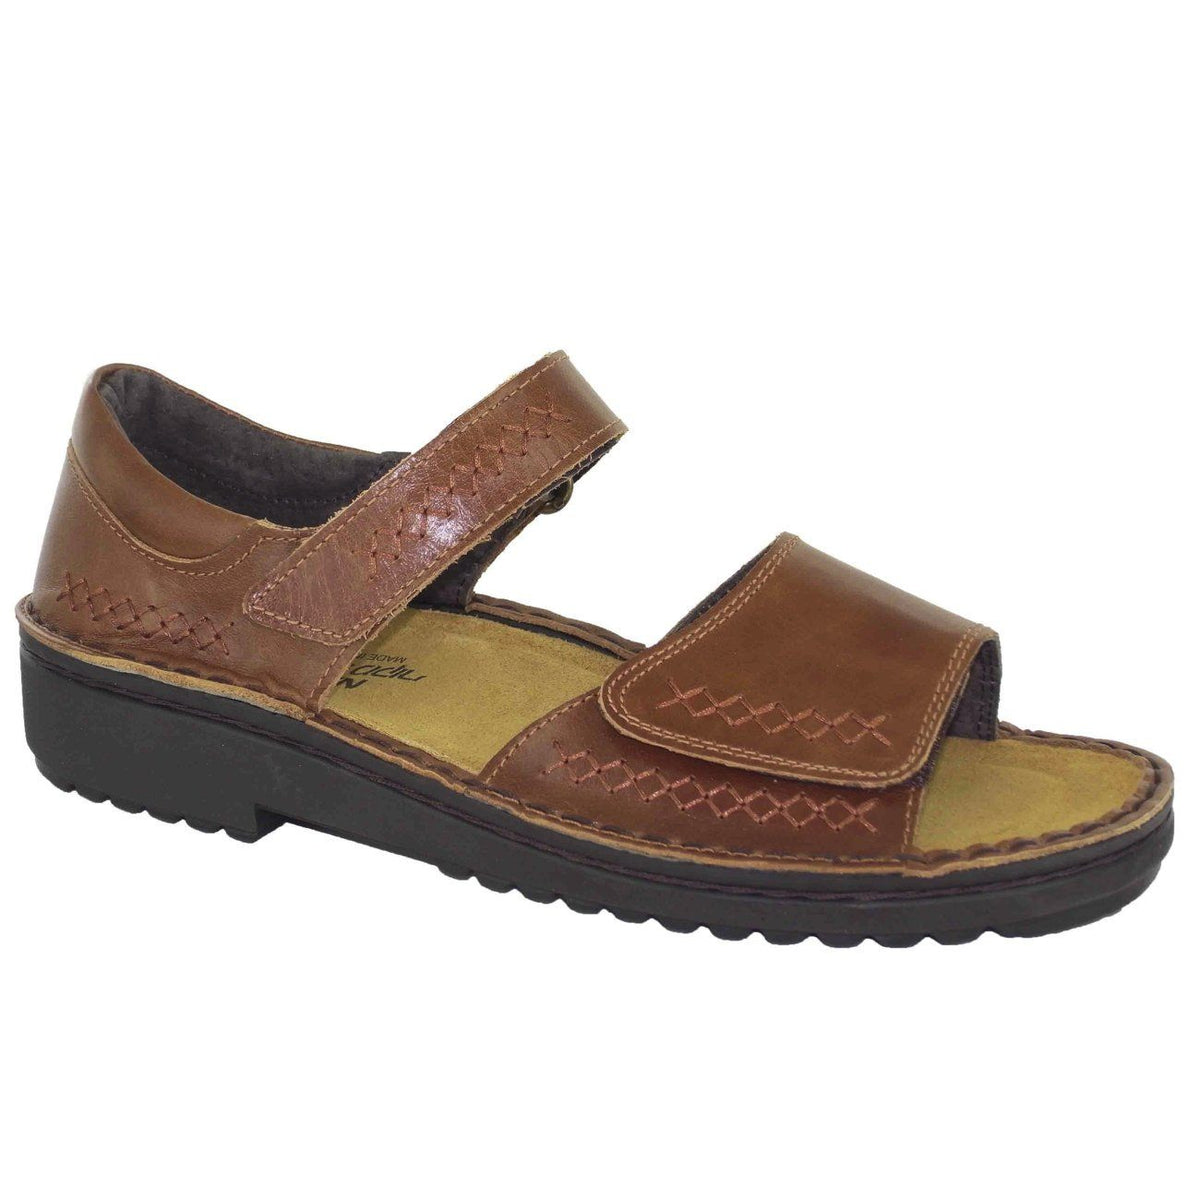 Naot, Norel, Leather, Maple Sandals Naot Maple 36